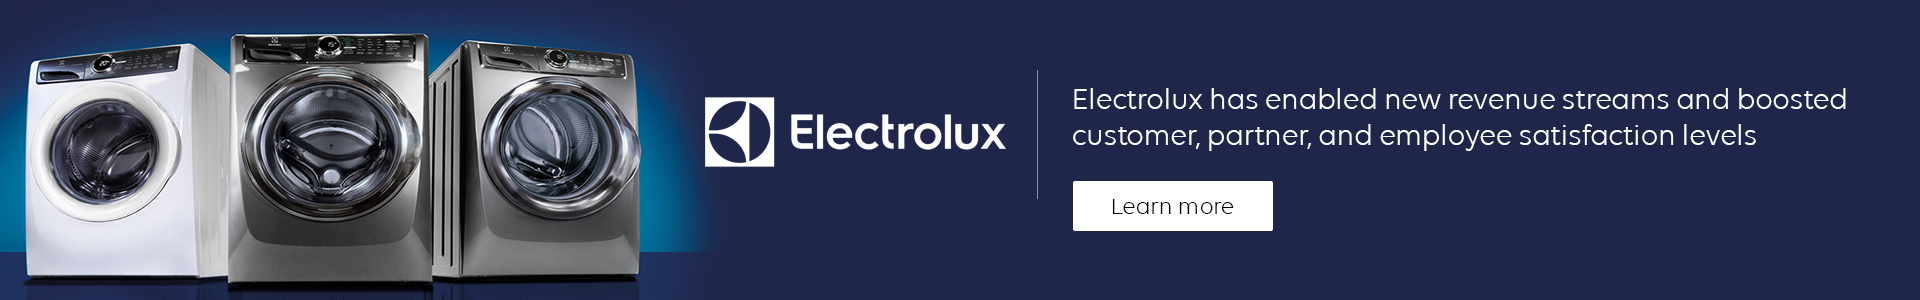 Electrolux Case Study Banner